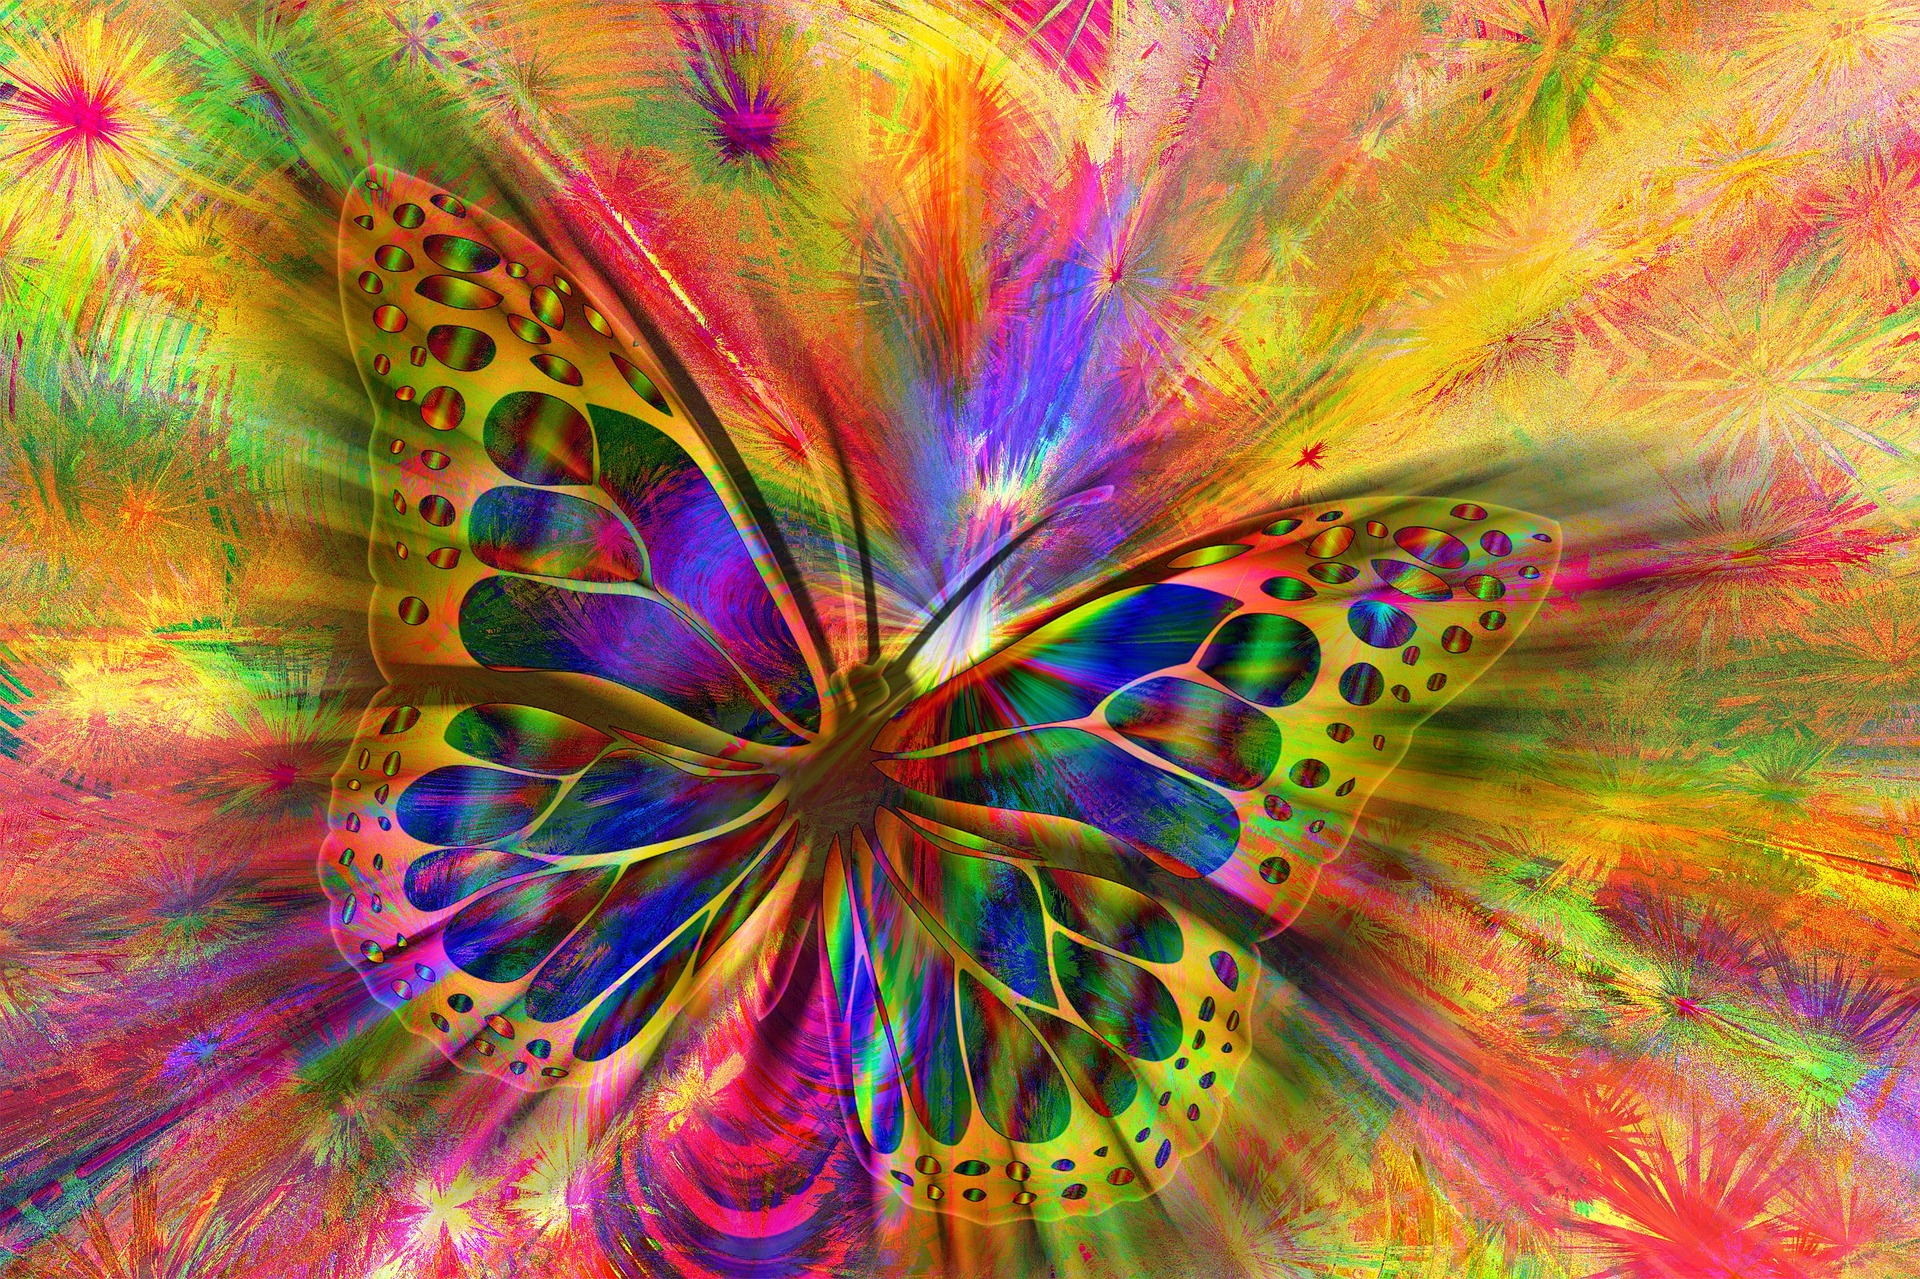 Butterfly, yoga, soul on fire, sofx, heart, mind, strength, tfw, training for warriors